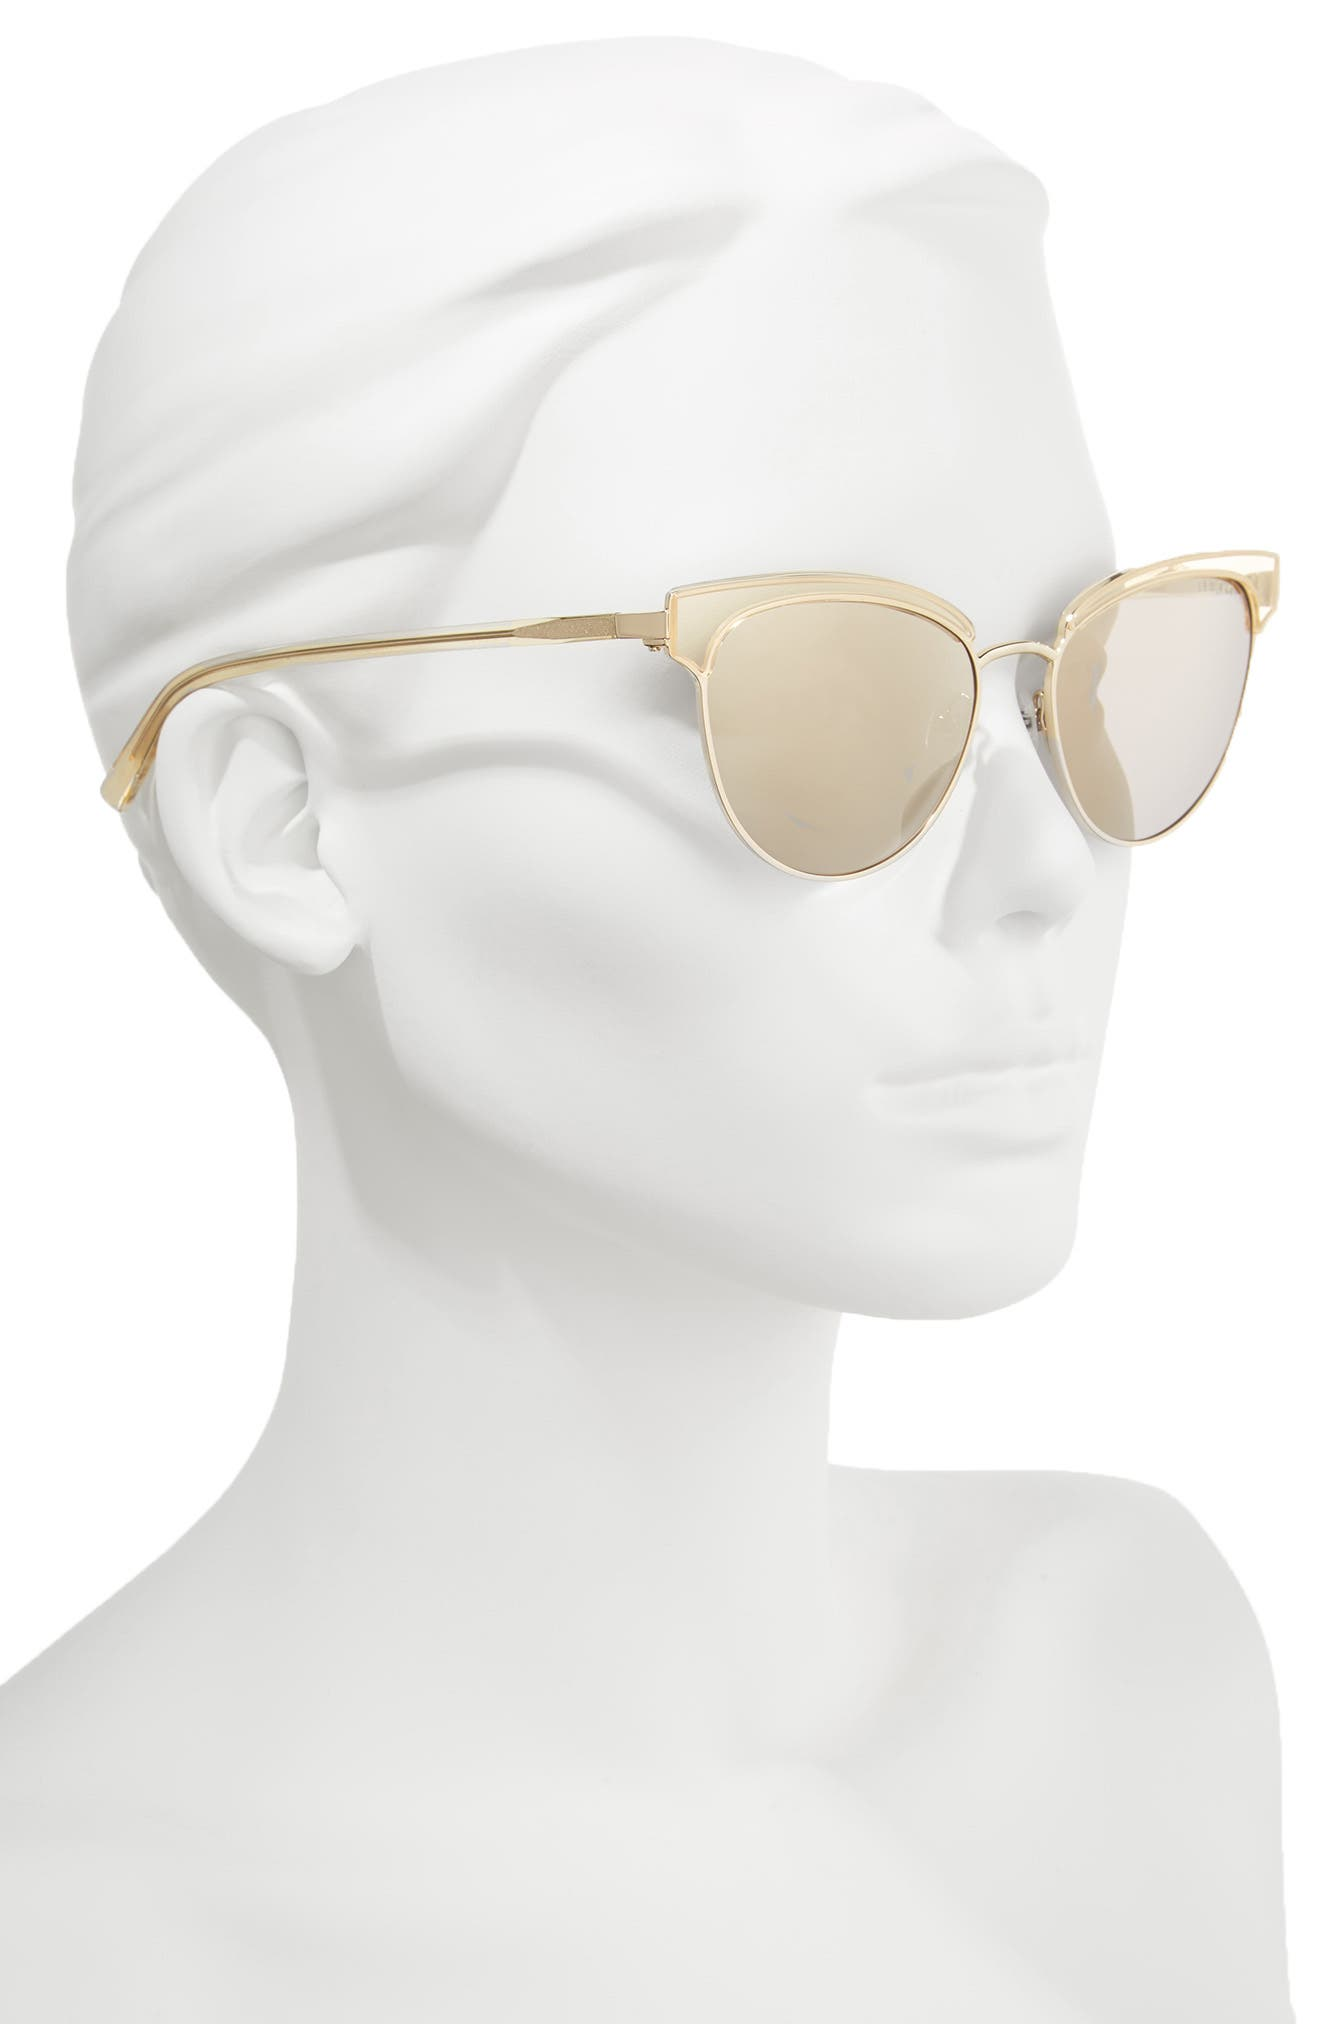 55mm Mirrored Semi Rimless Cat Eye Sunglasses,                             Alternate thumbnail 2, color,                             Gold